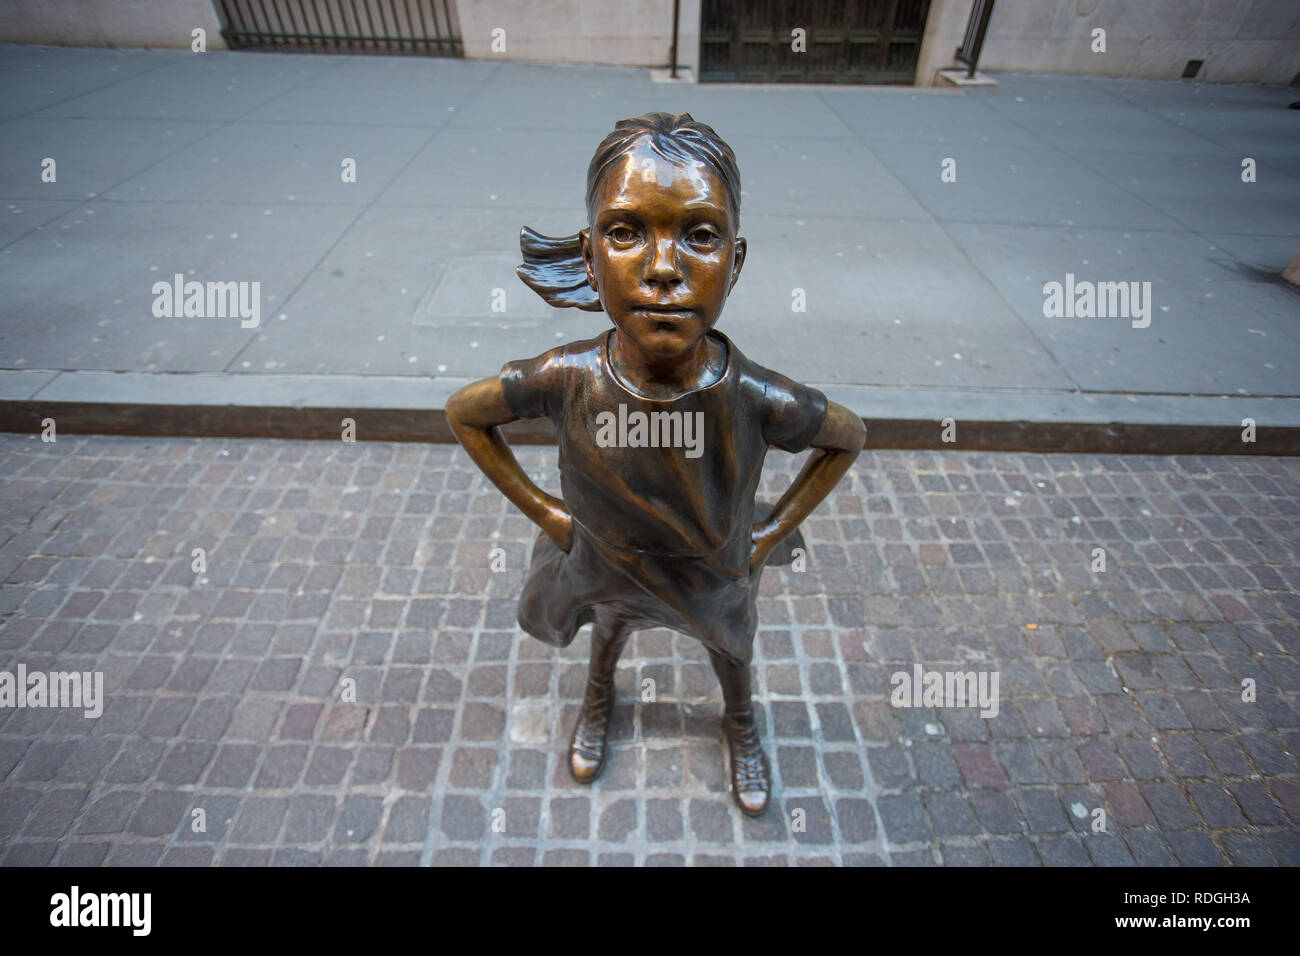 Fearless girl statue in front of the New York Stock Exchange, Wall Street, Manhattan, New York, USA - Stock Image